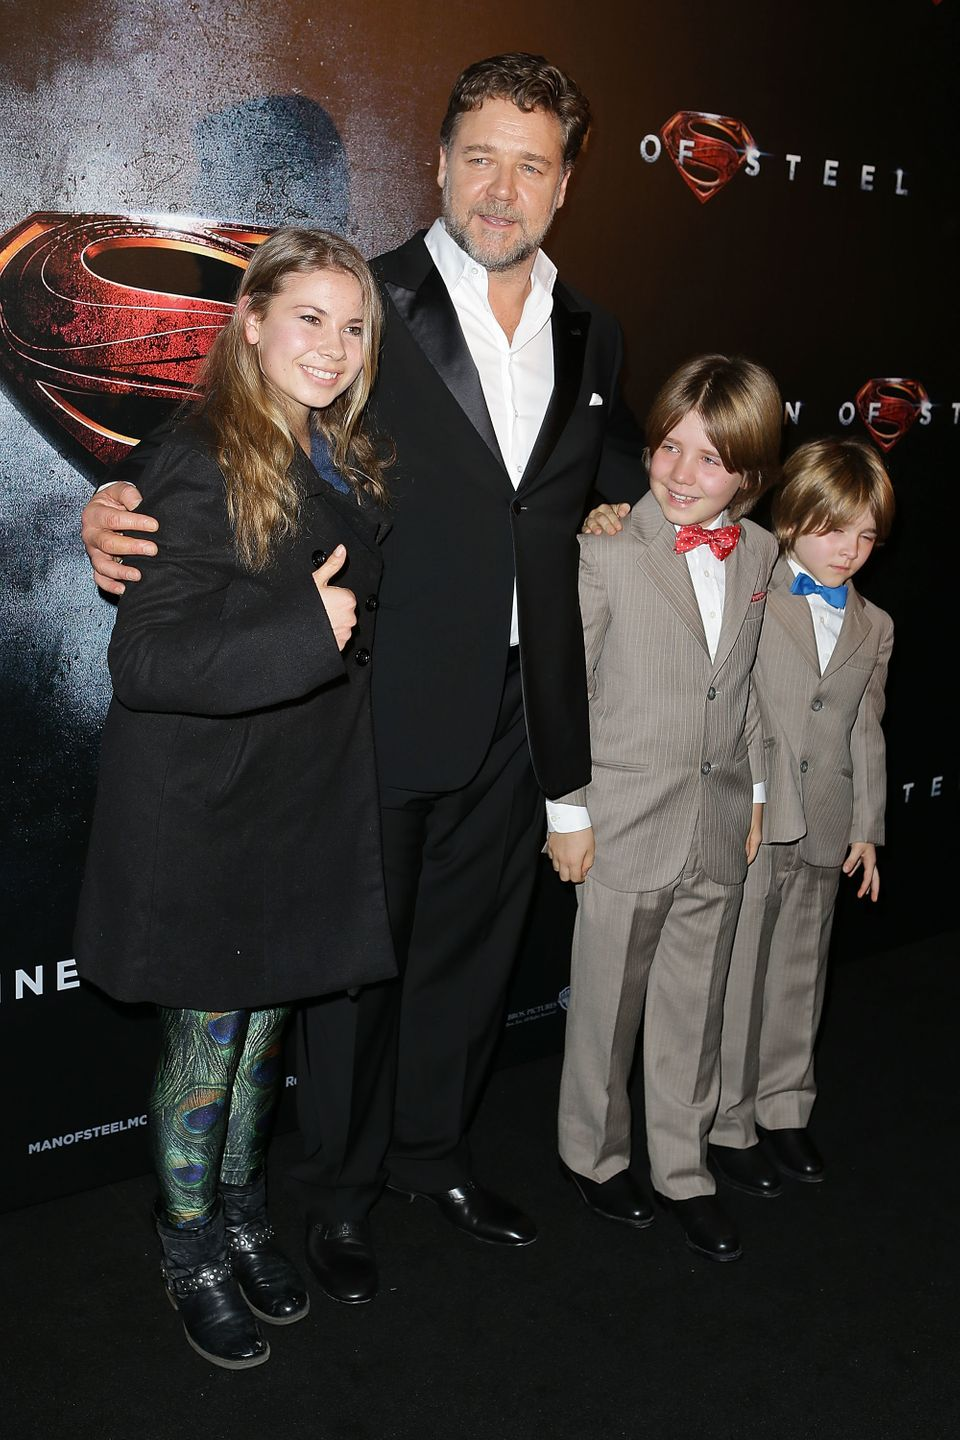 Bindi Irwin, Russell Crowe, Tennyson Crowe and Charles Crowe arrive at the 'Man Of Steel' Australian premiere on June 24, 201